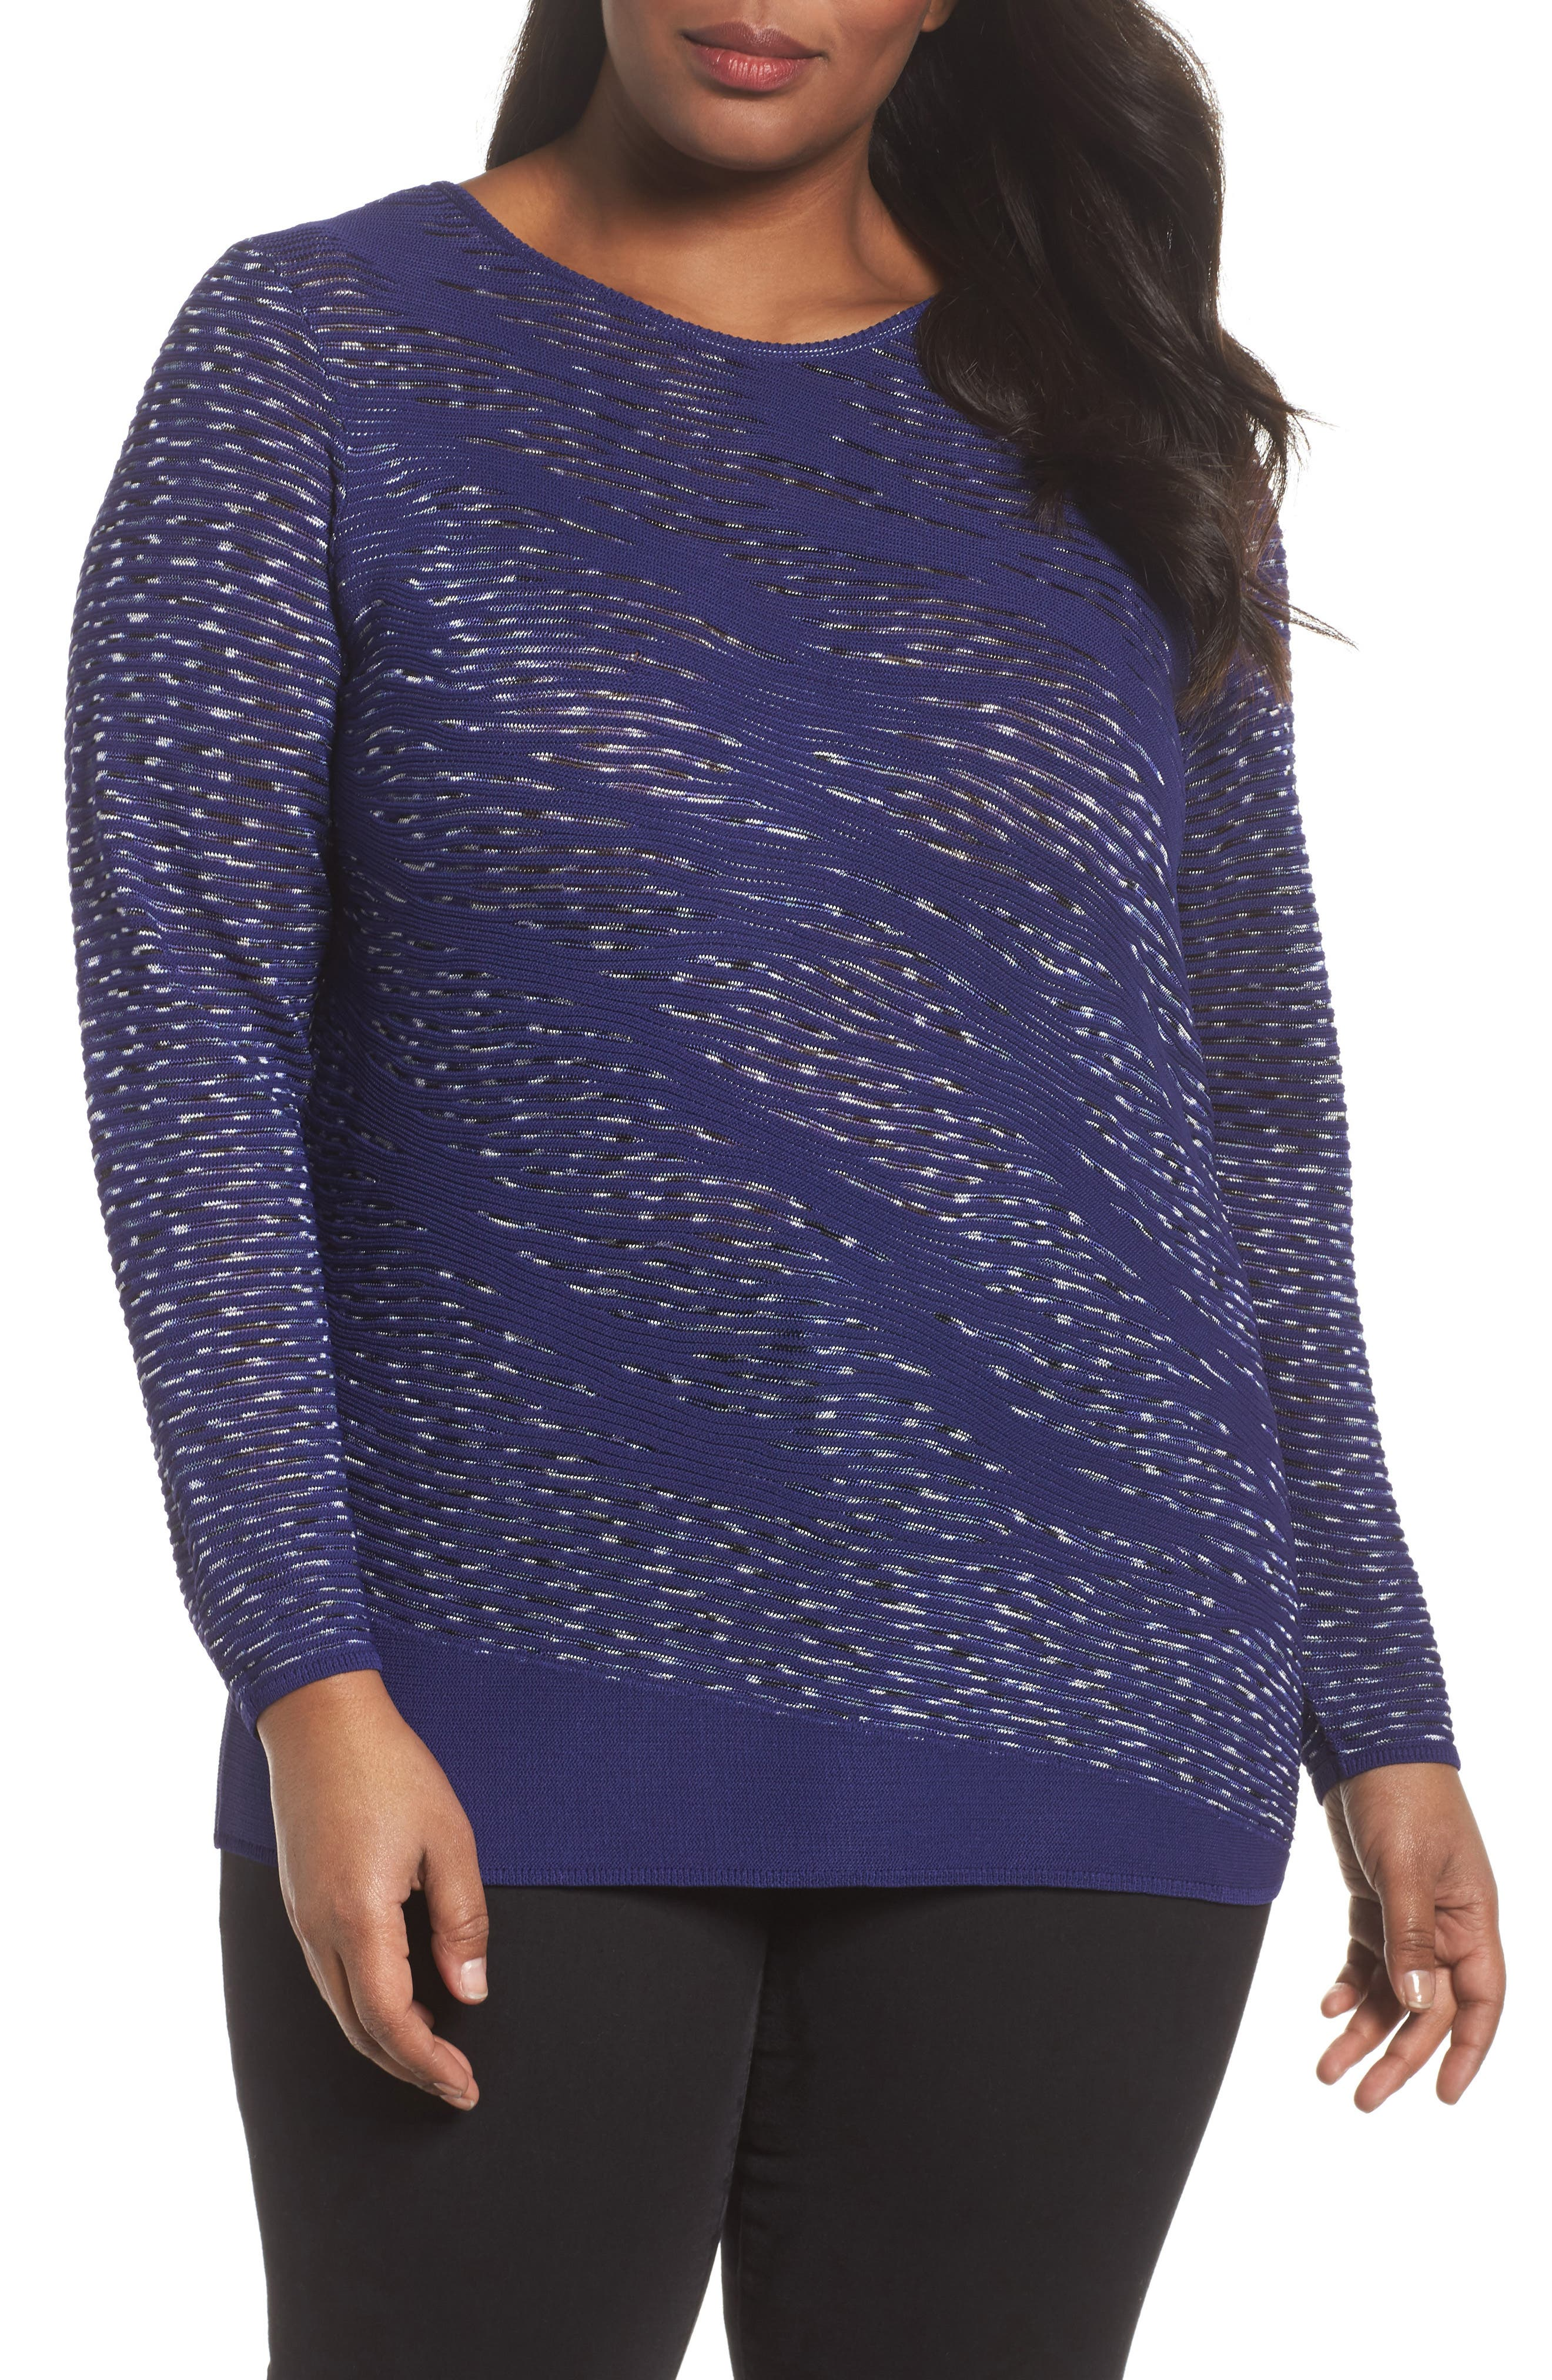 This Is Living Knit Top,                             Main thumbnail 1, color,                             ELECTRIC BLUE